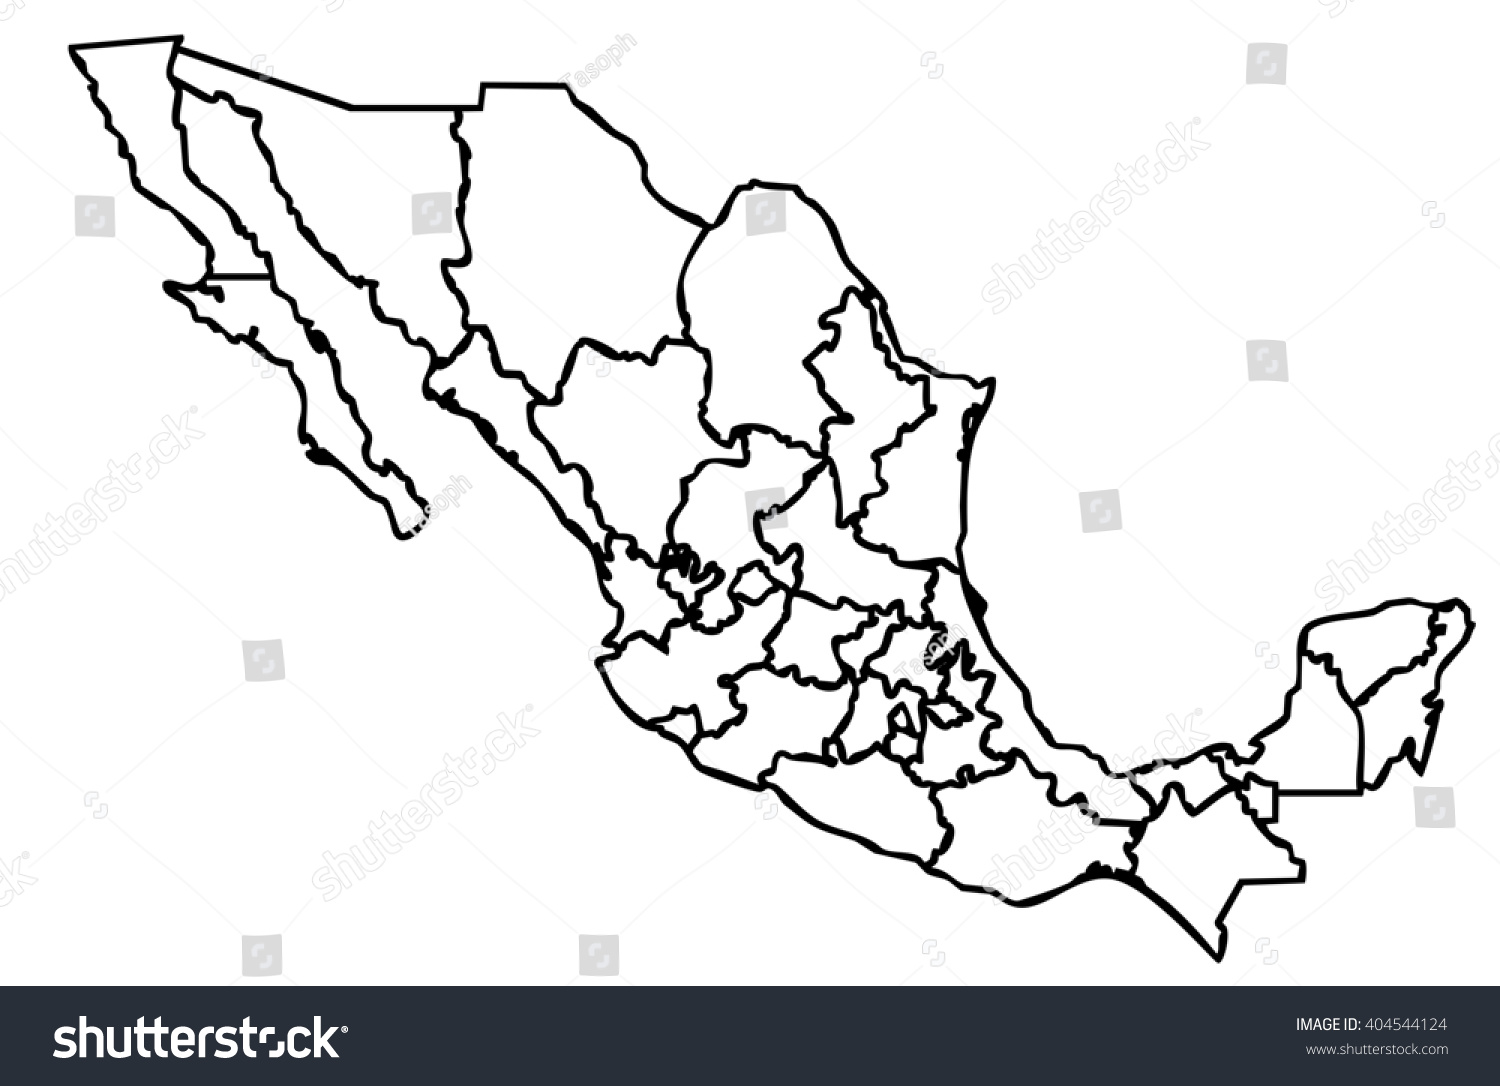 isolated political mexican map of mexico state of america with black outline of internal country frontier